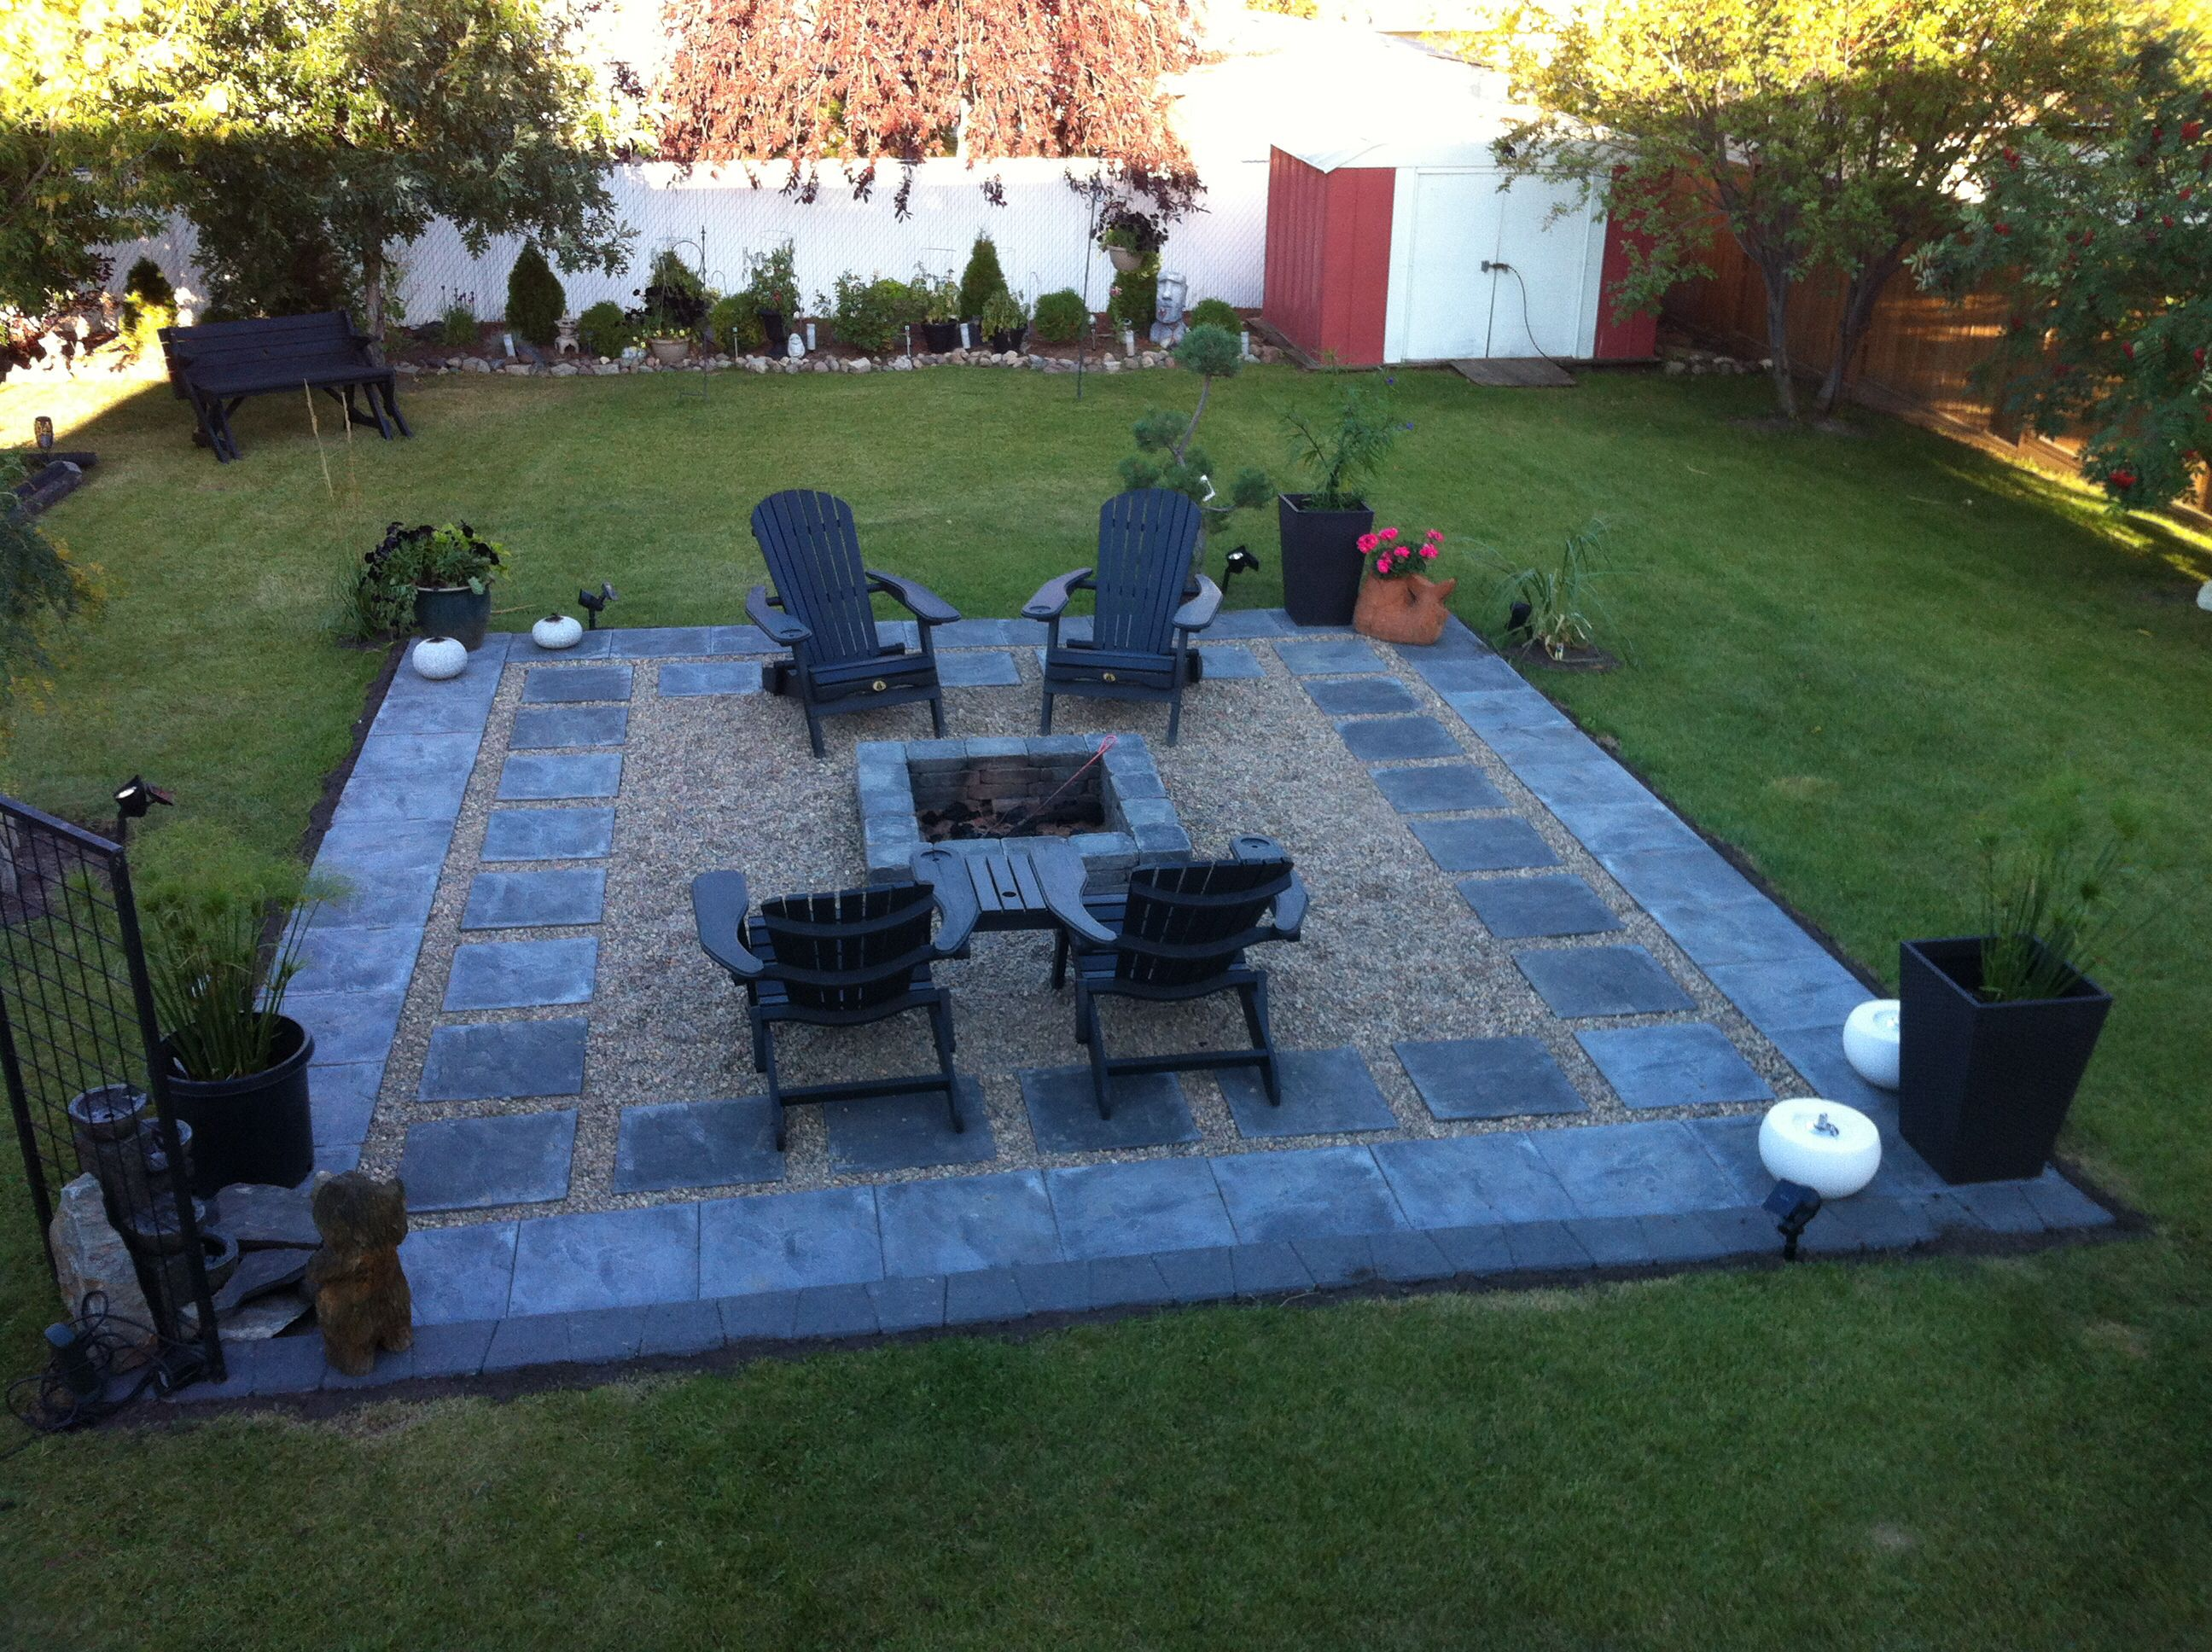 Charcoal Slate Patio Stones With Pea Stone Gravel. A Square Fire Pit To  Compliment The Patio Stones! Easy To Build As Long As You Have A Level  Backyard.